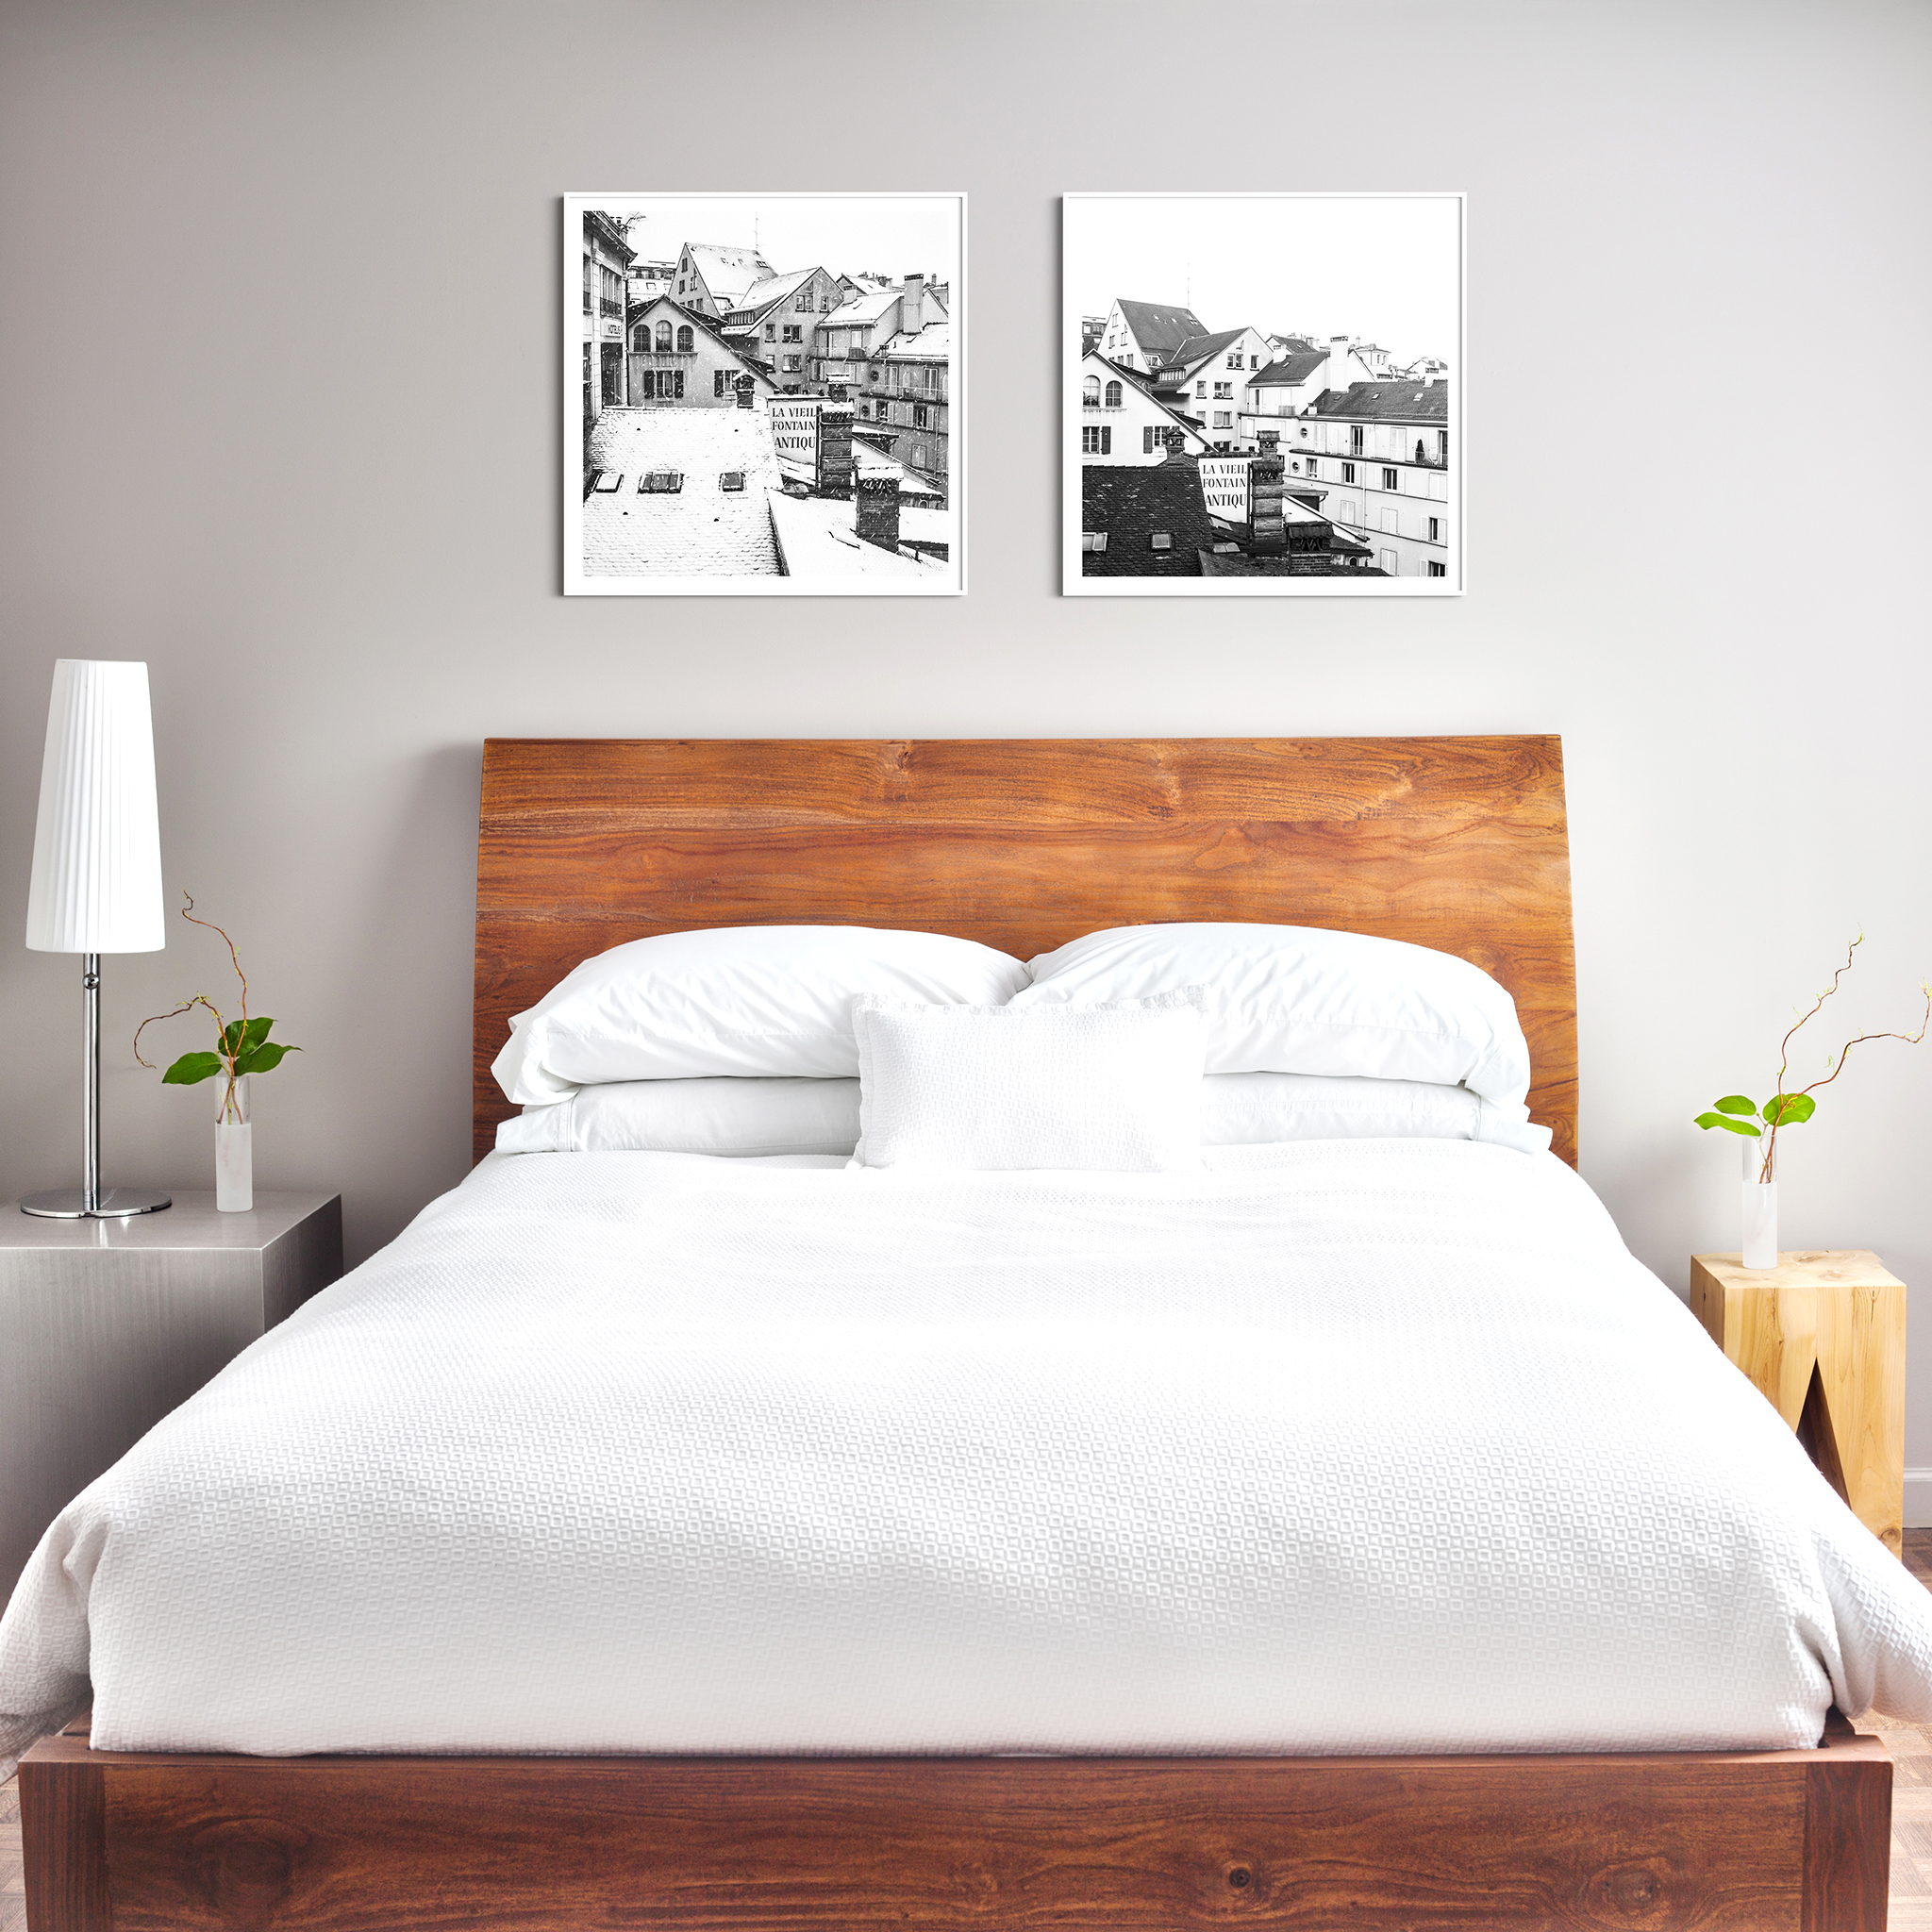 Snowy Day in Lausanne black and white print in white frame with border on the wall in the bedroom